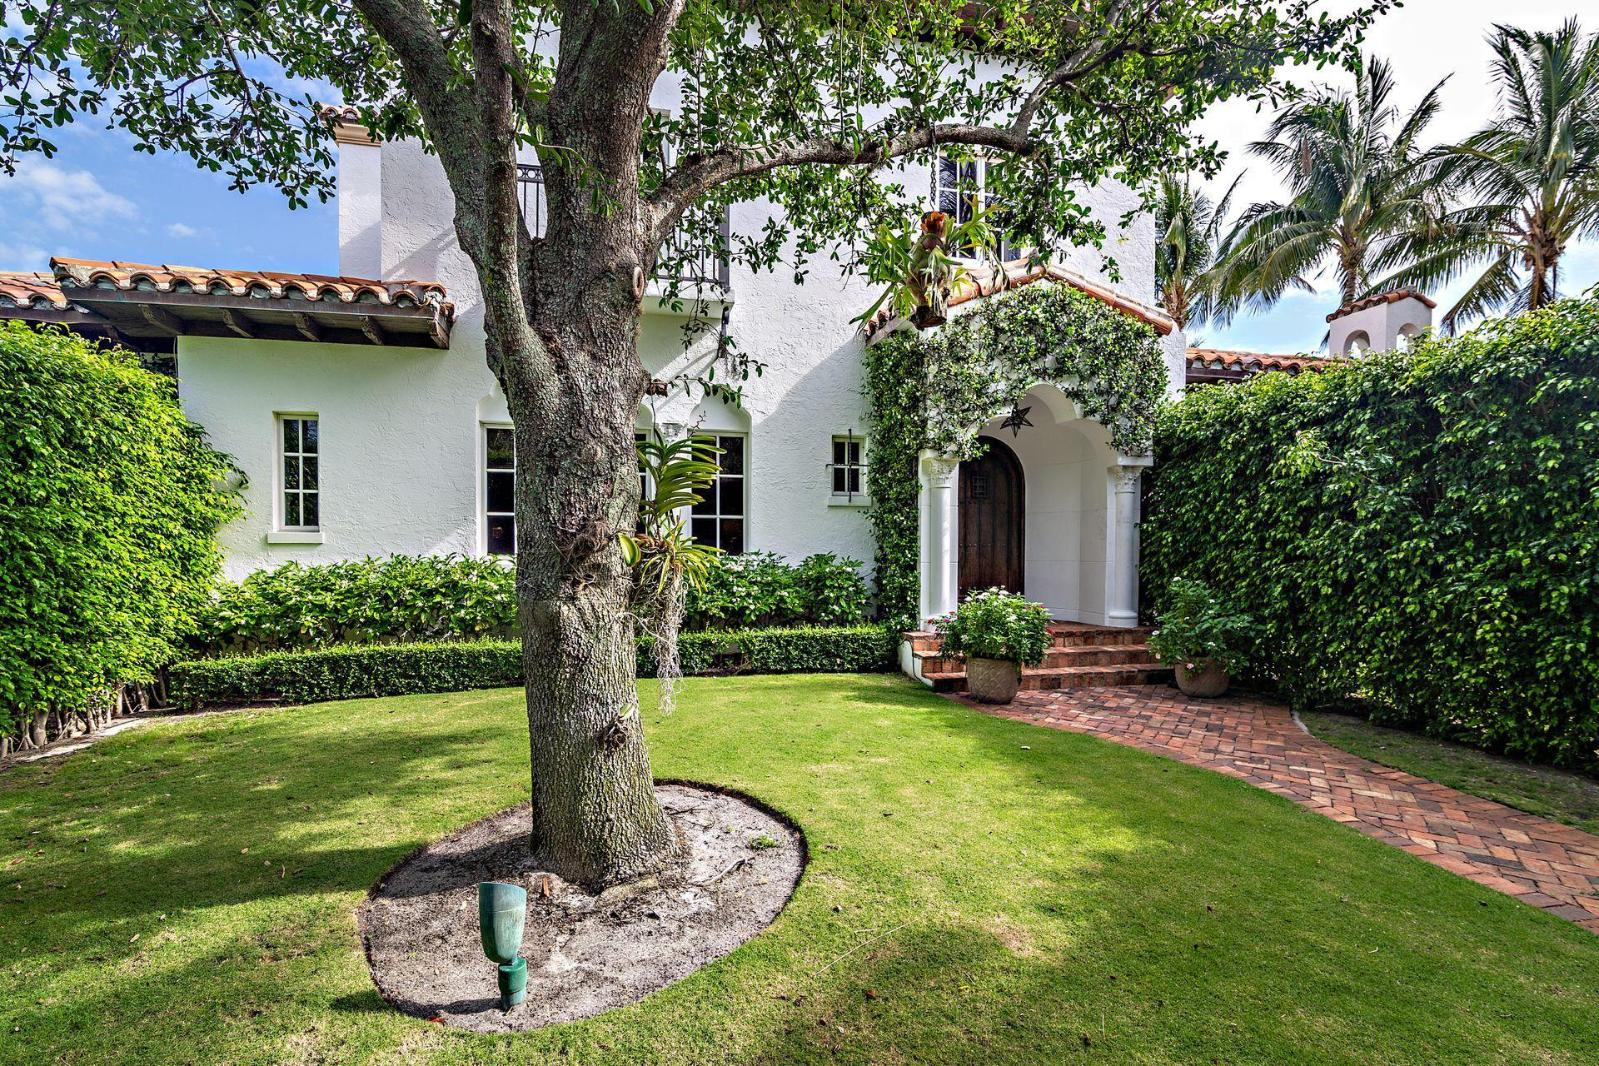 Local West Palm Beach, FL Real Estate Listings and Homes for Sale ...